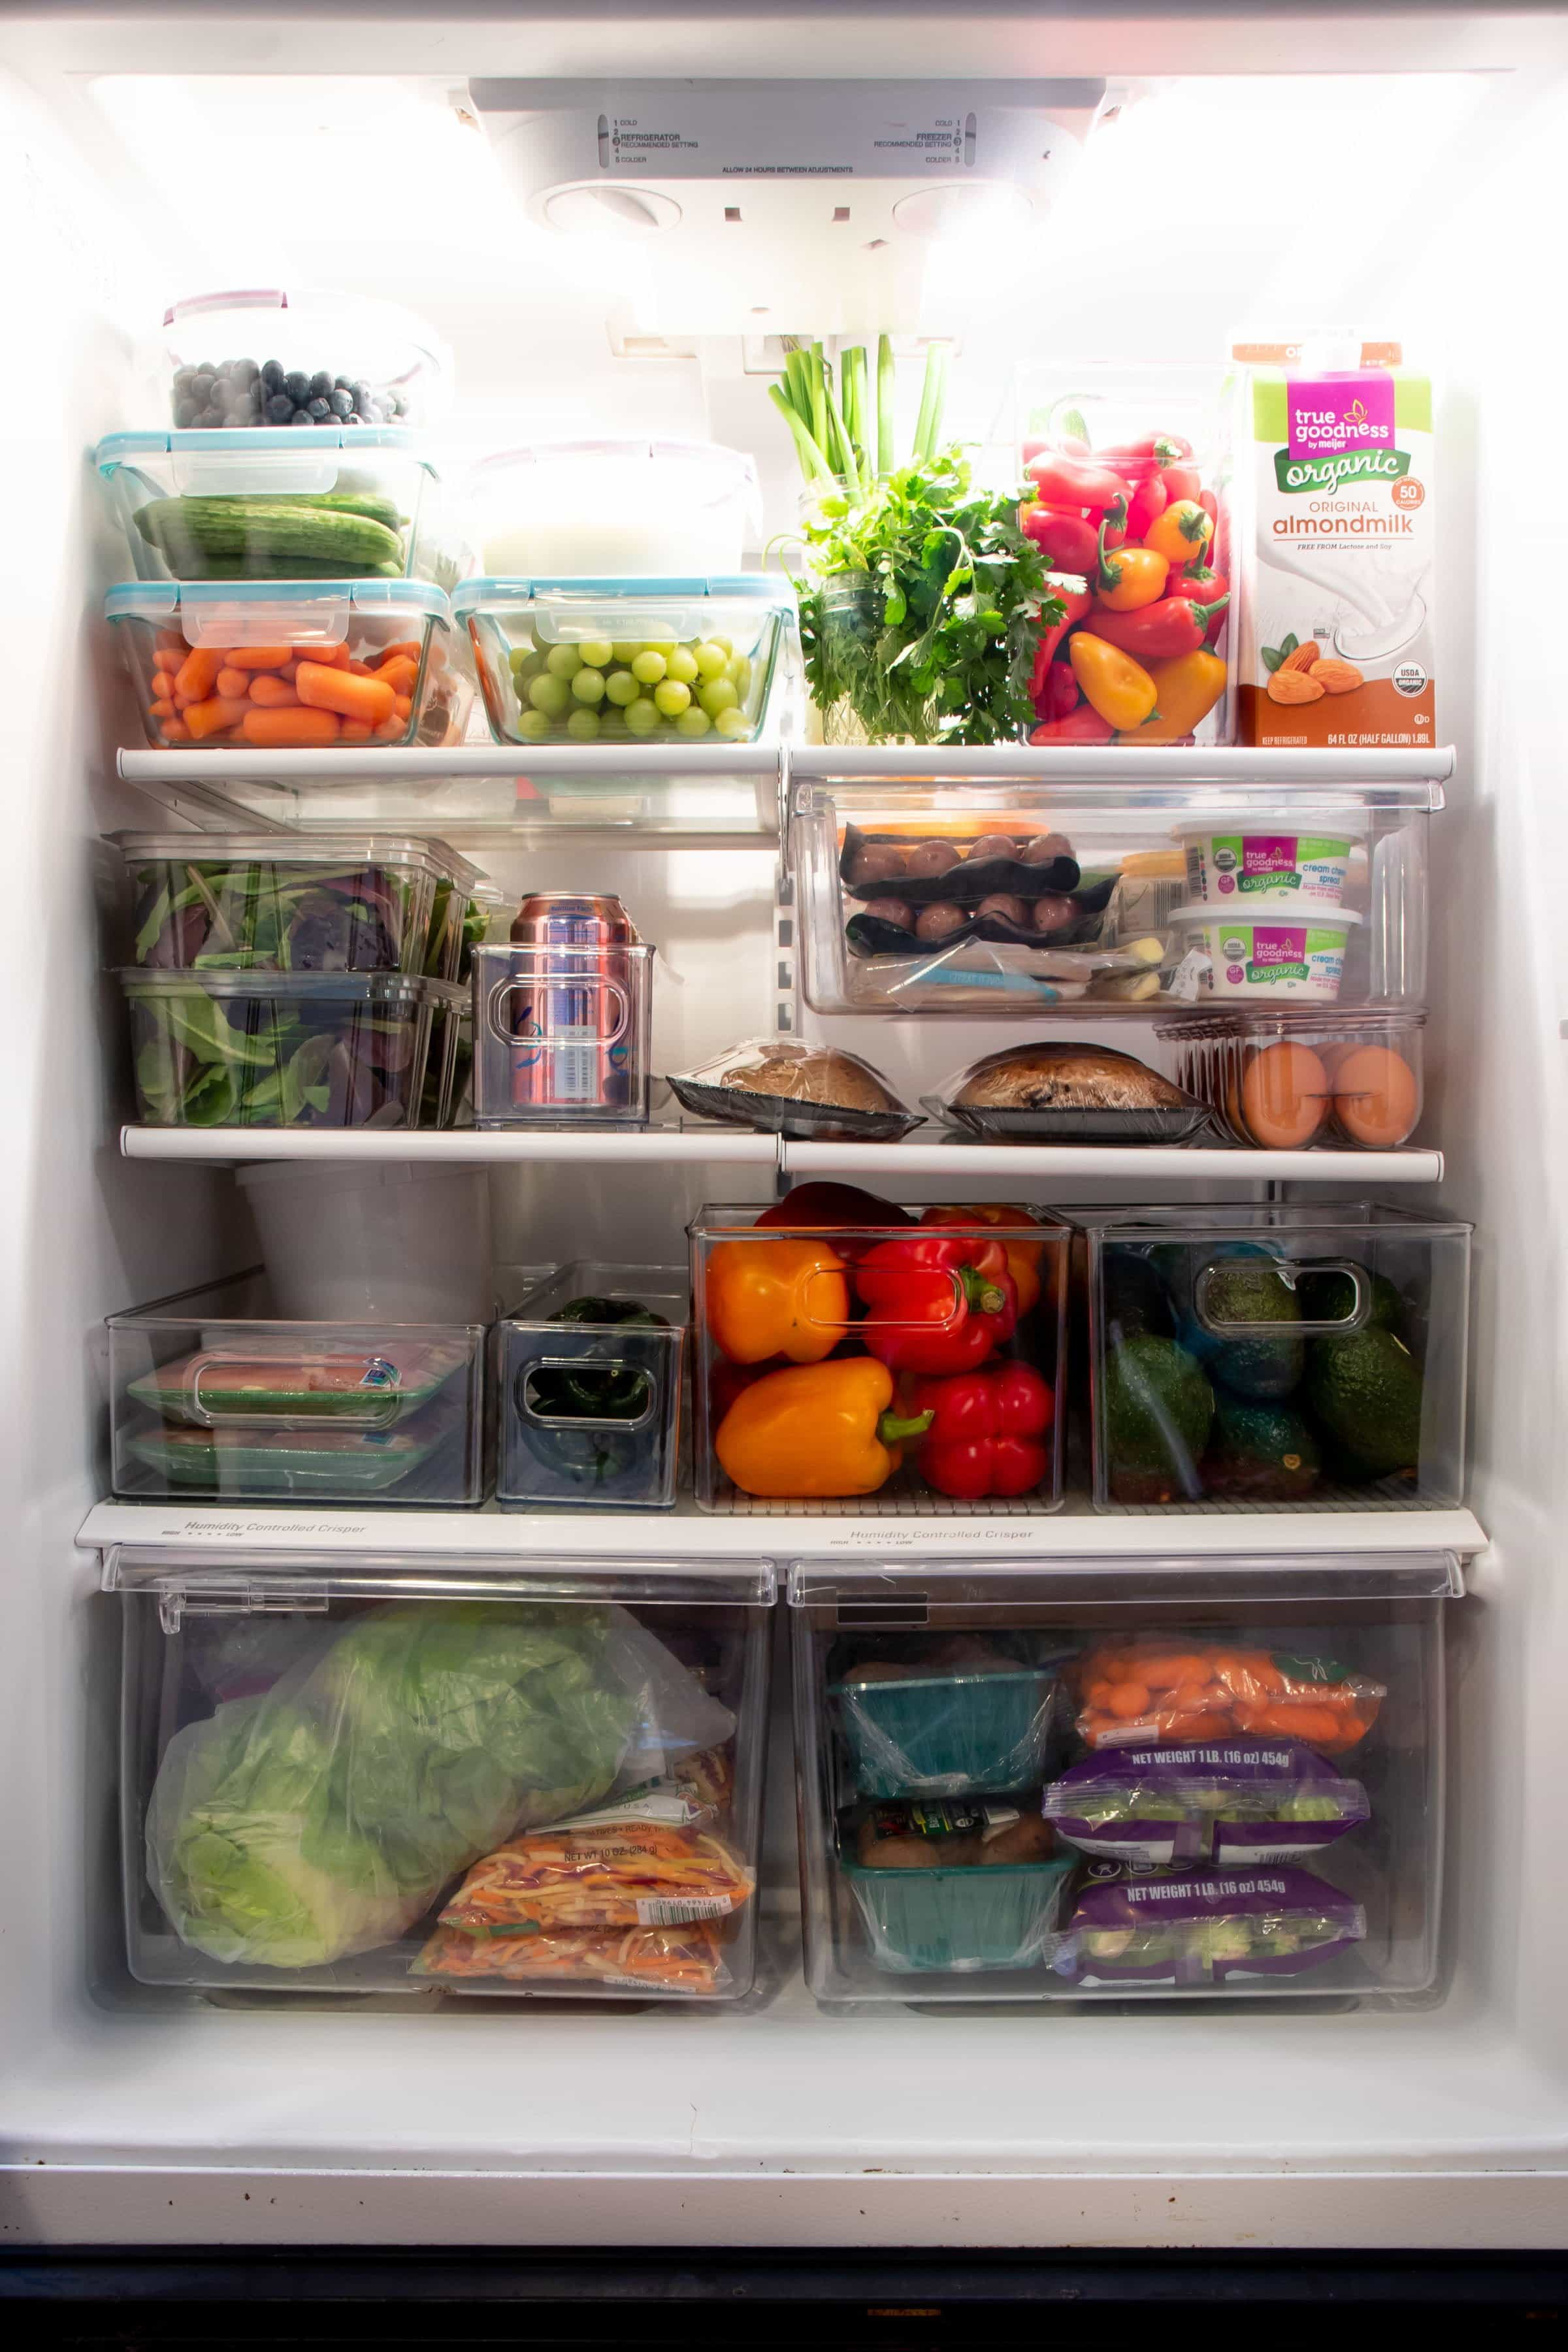 A clean, organized fridge filled mostly with produce